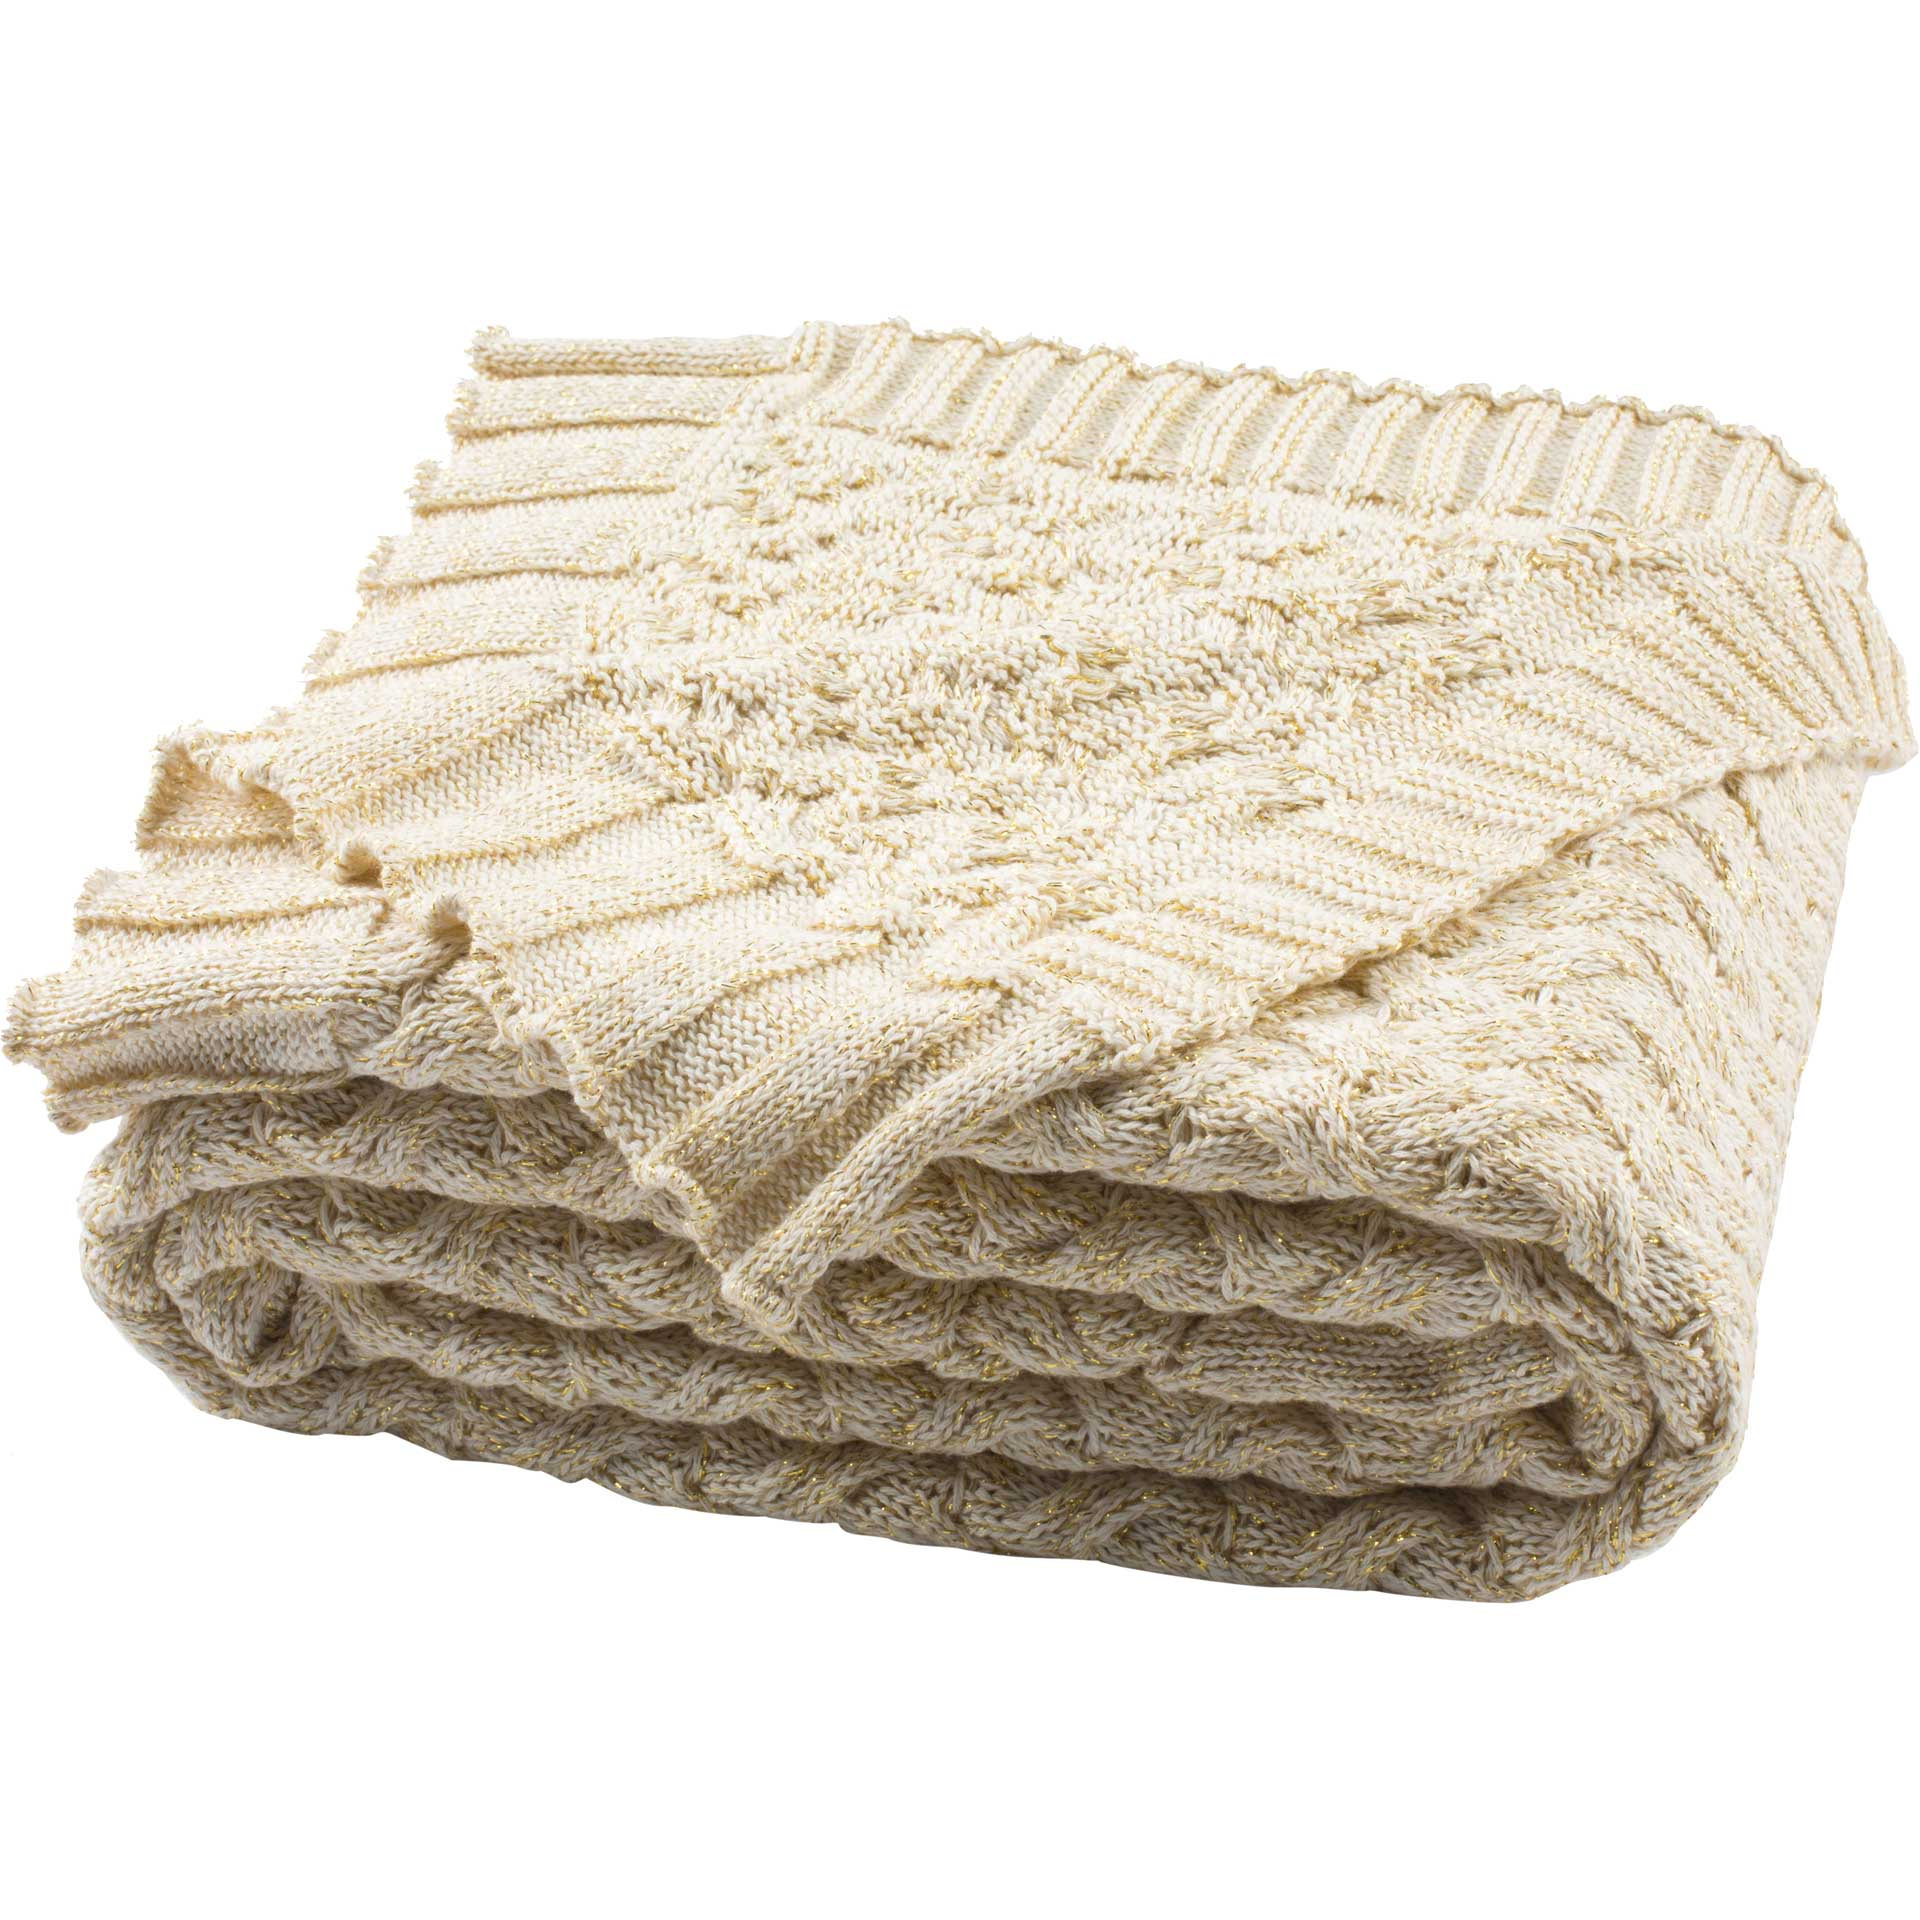 Admiration Knit Throw Natural/Gold